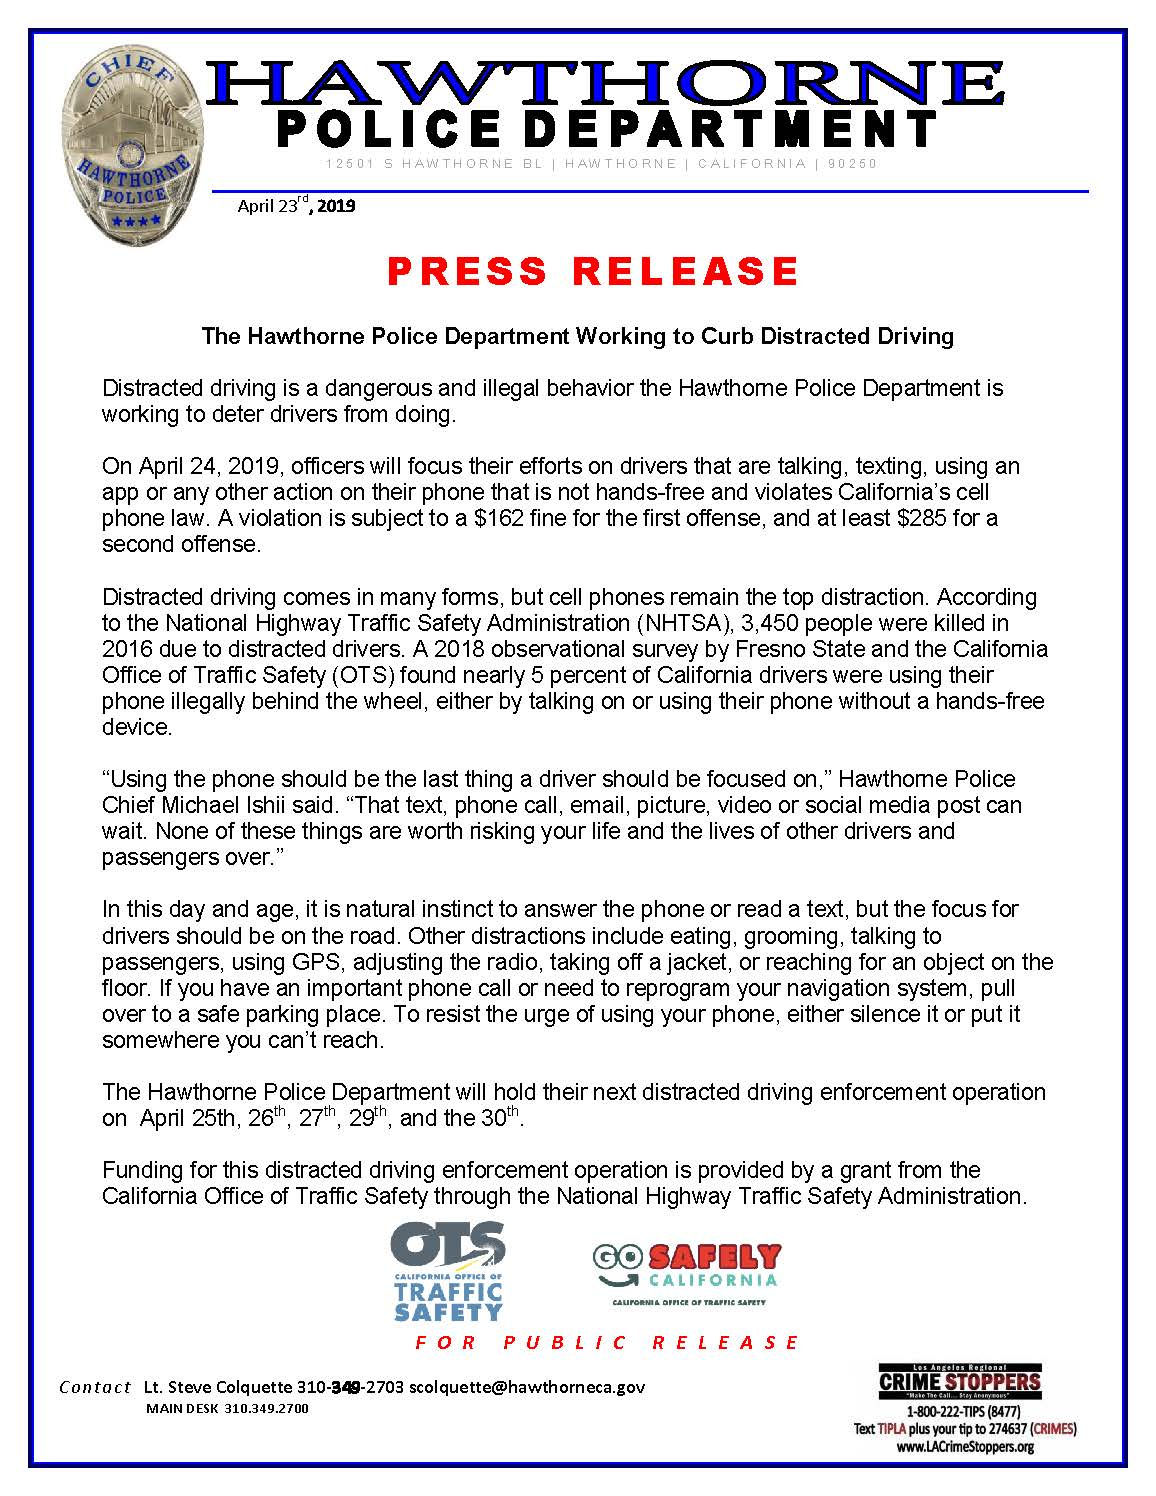 Curb Distracted Driving Press Release #3